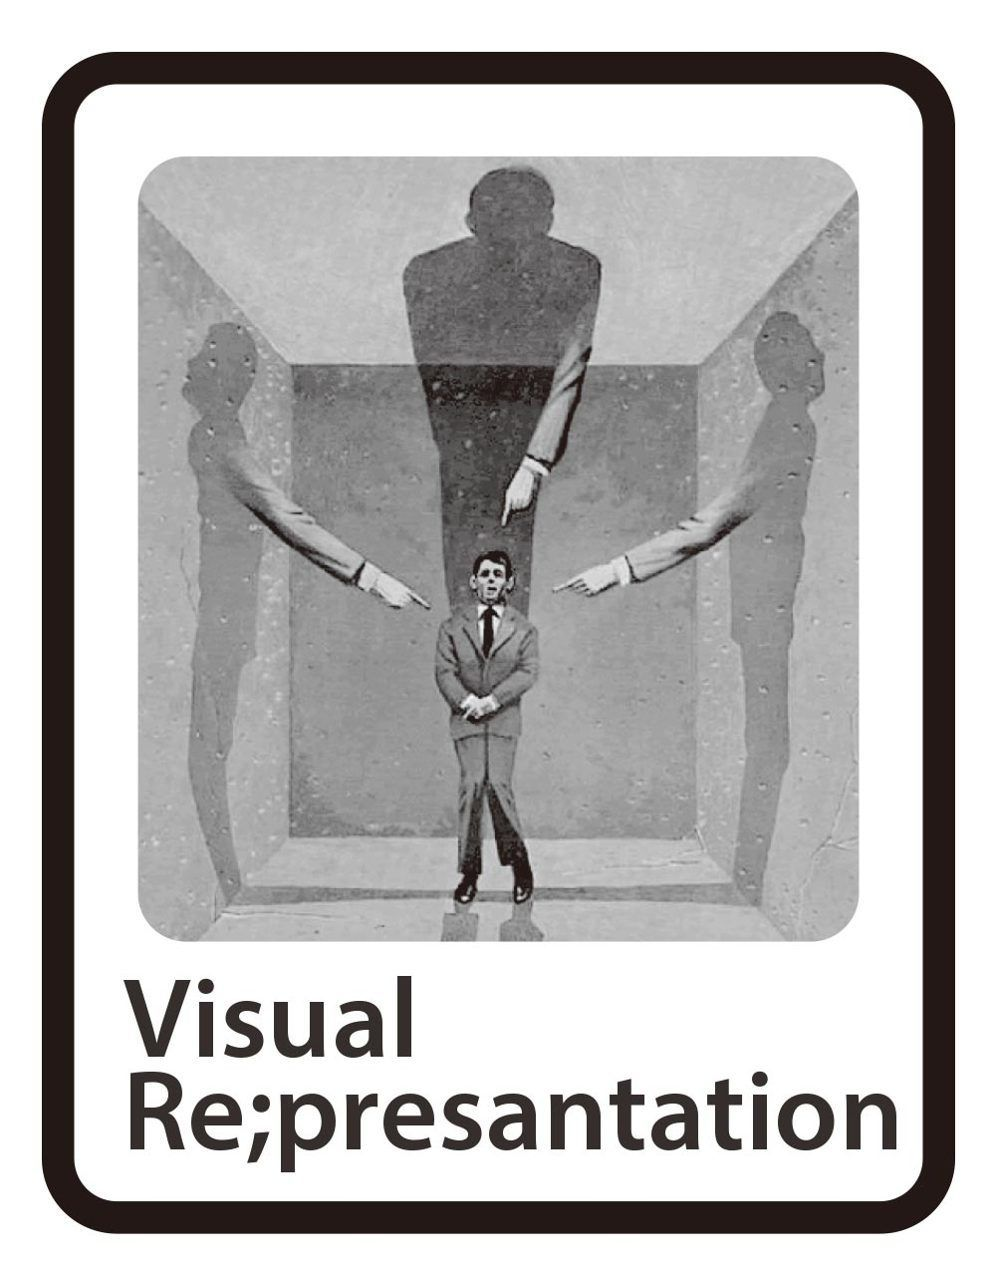 Visual Re;presentation